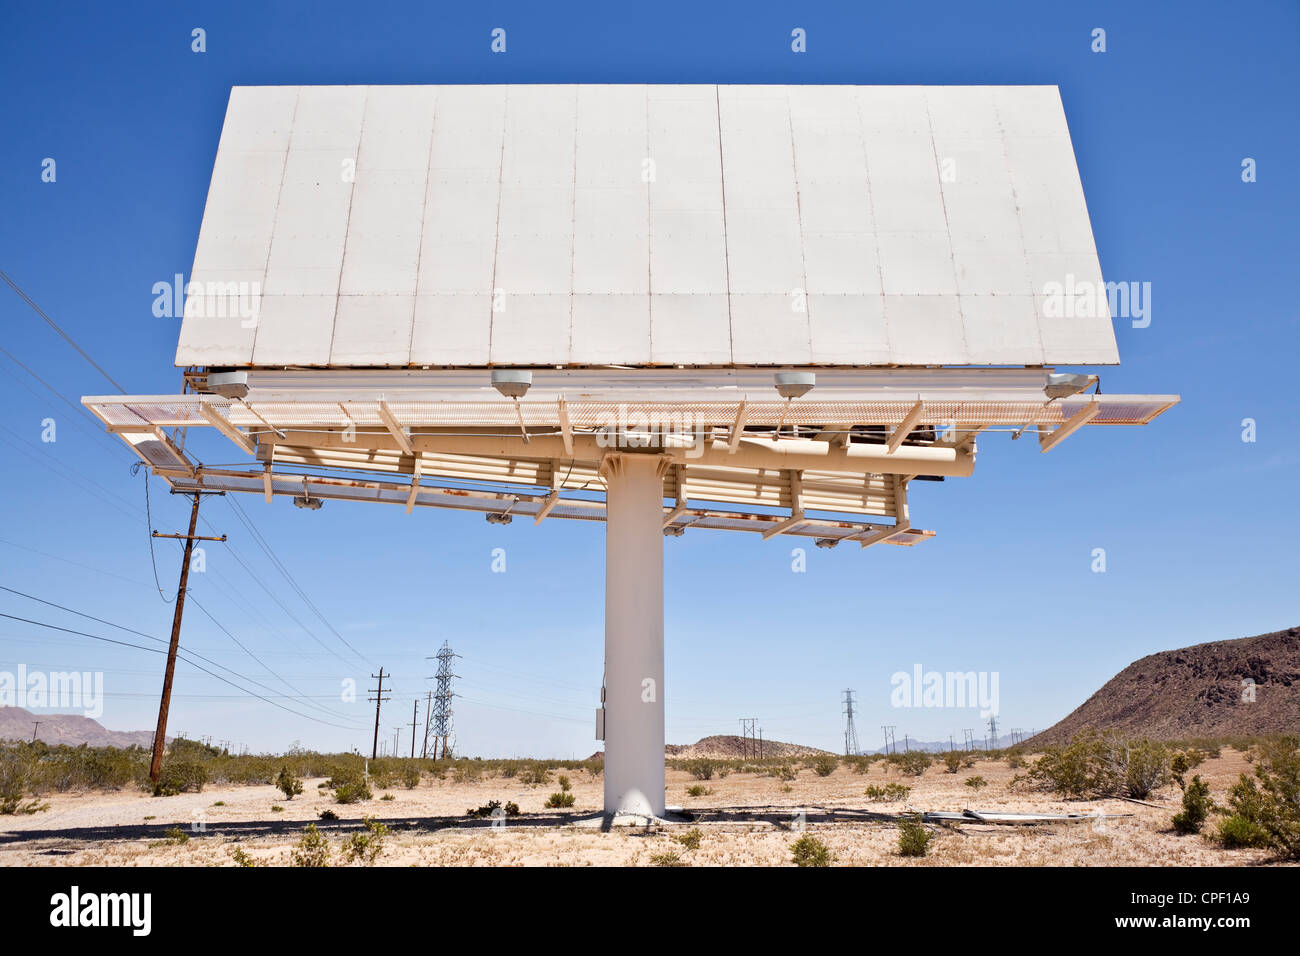 Old blank billboard in the middle of California's Mojave desert. - Stock Image